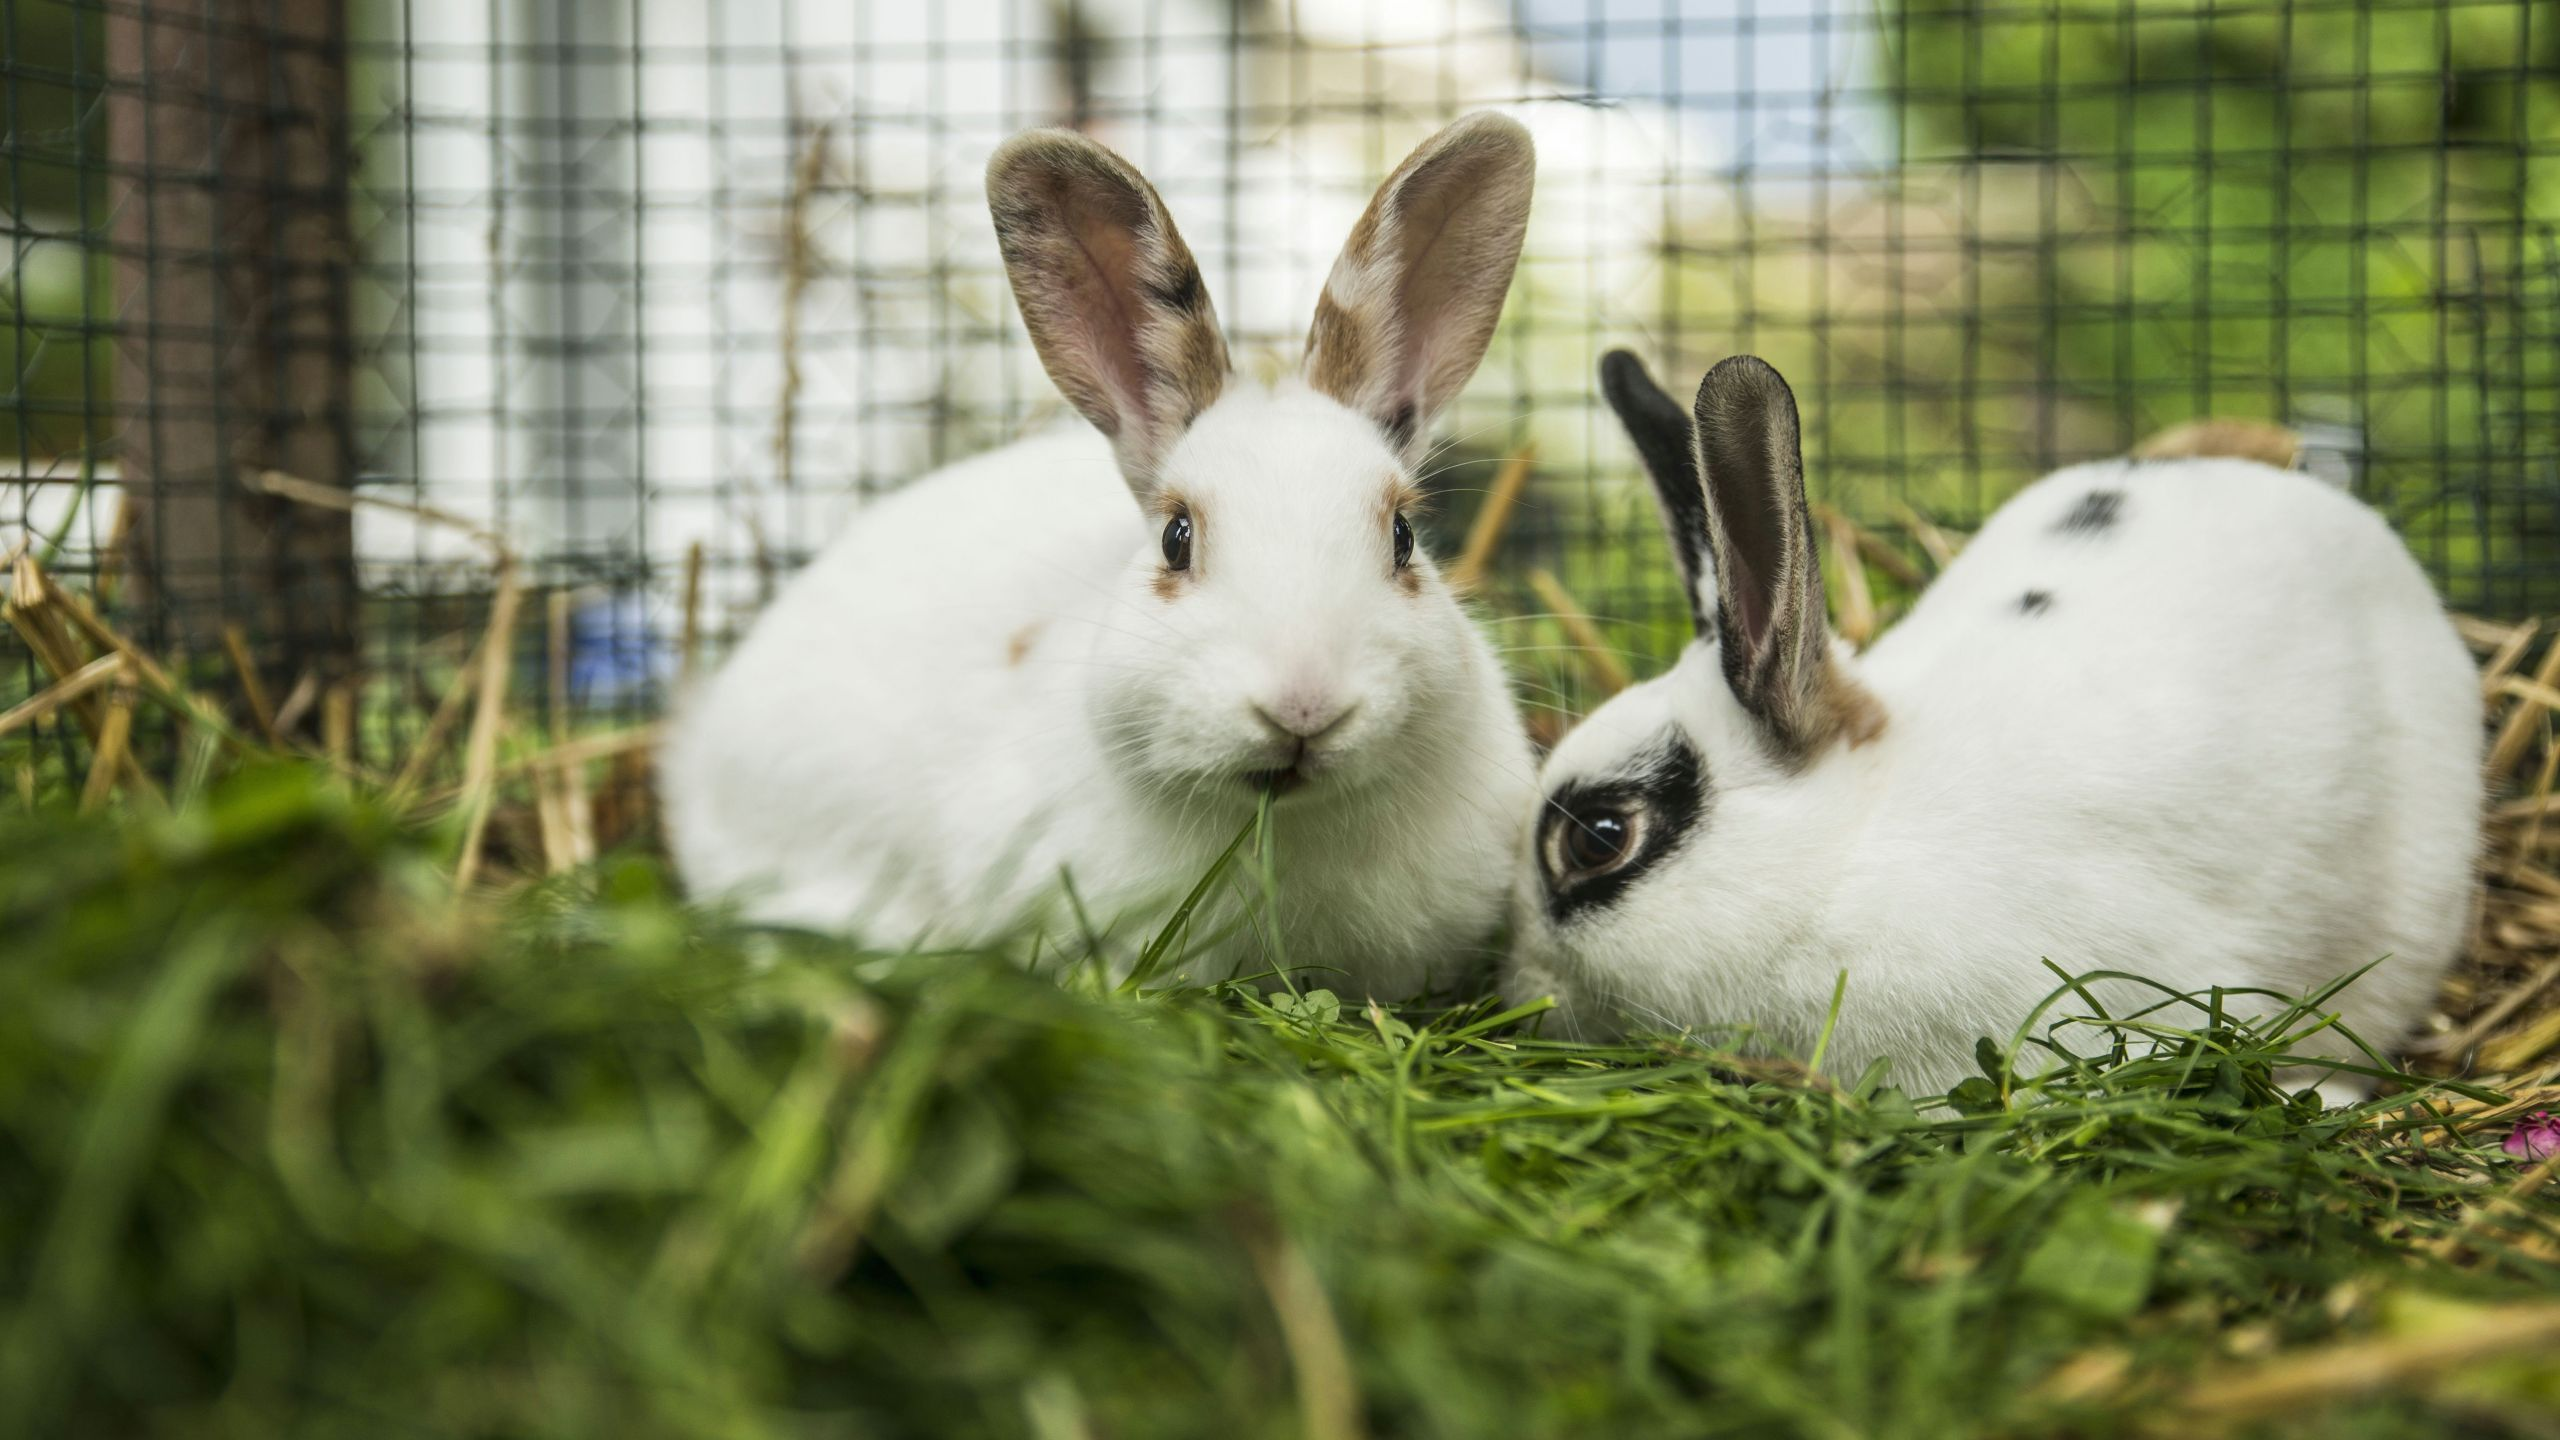 two rabbits in a cage on a meadow 670881045 58d3f3475f9b584683440676 jpg